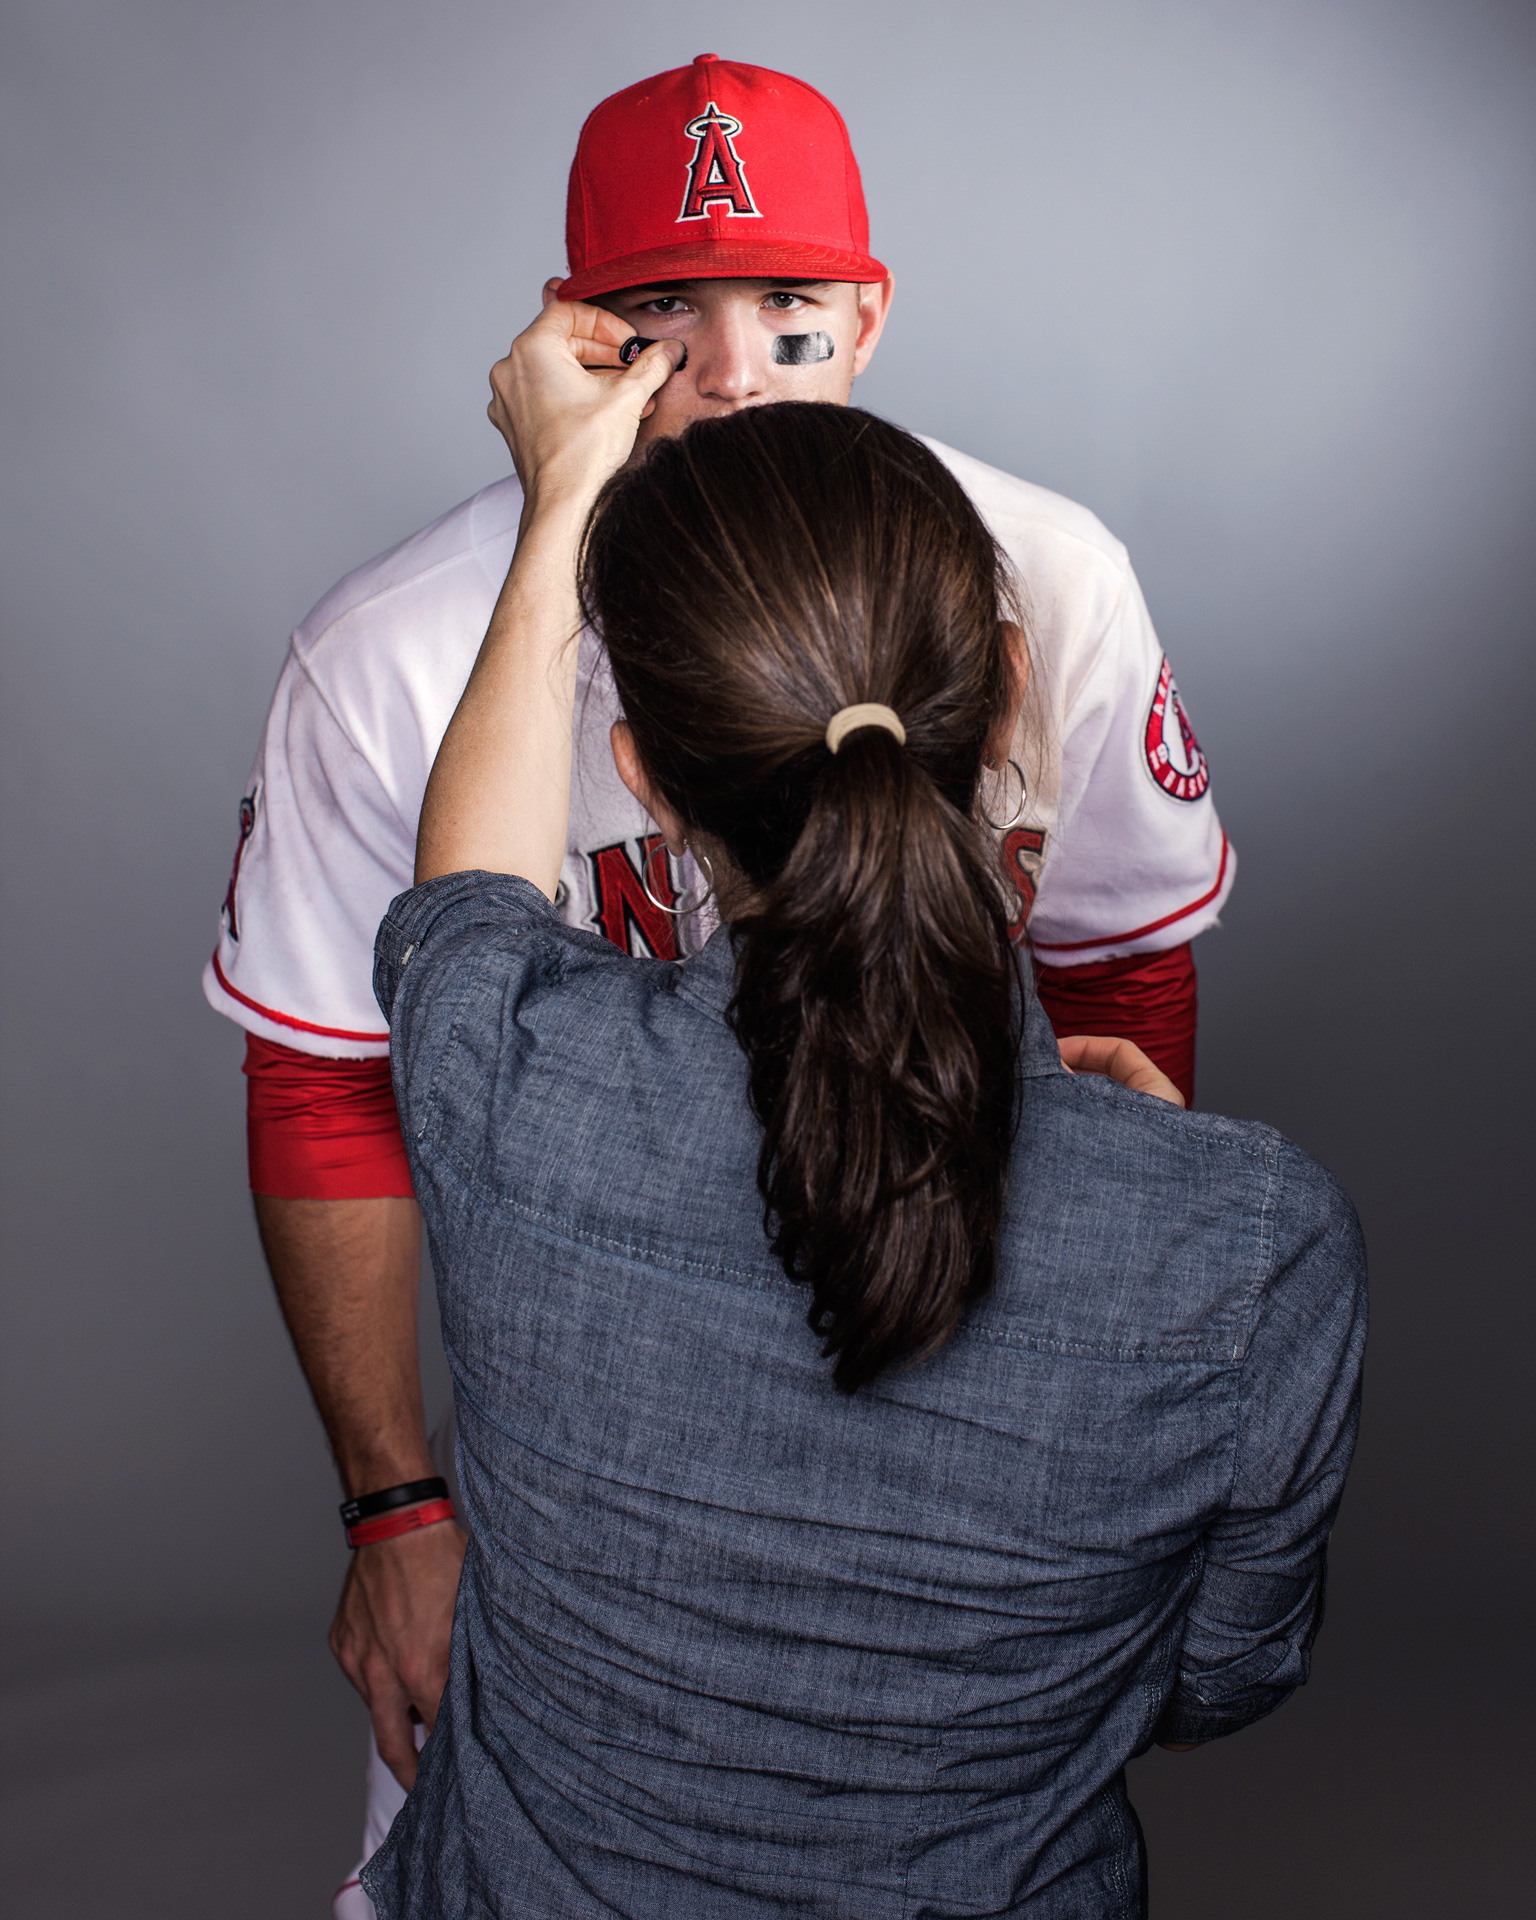 Karen Frank and Mike Trout